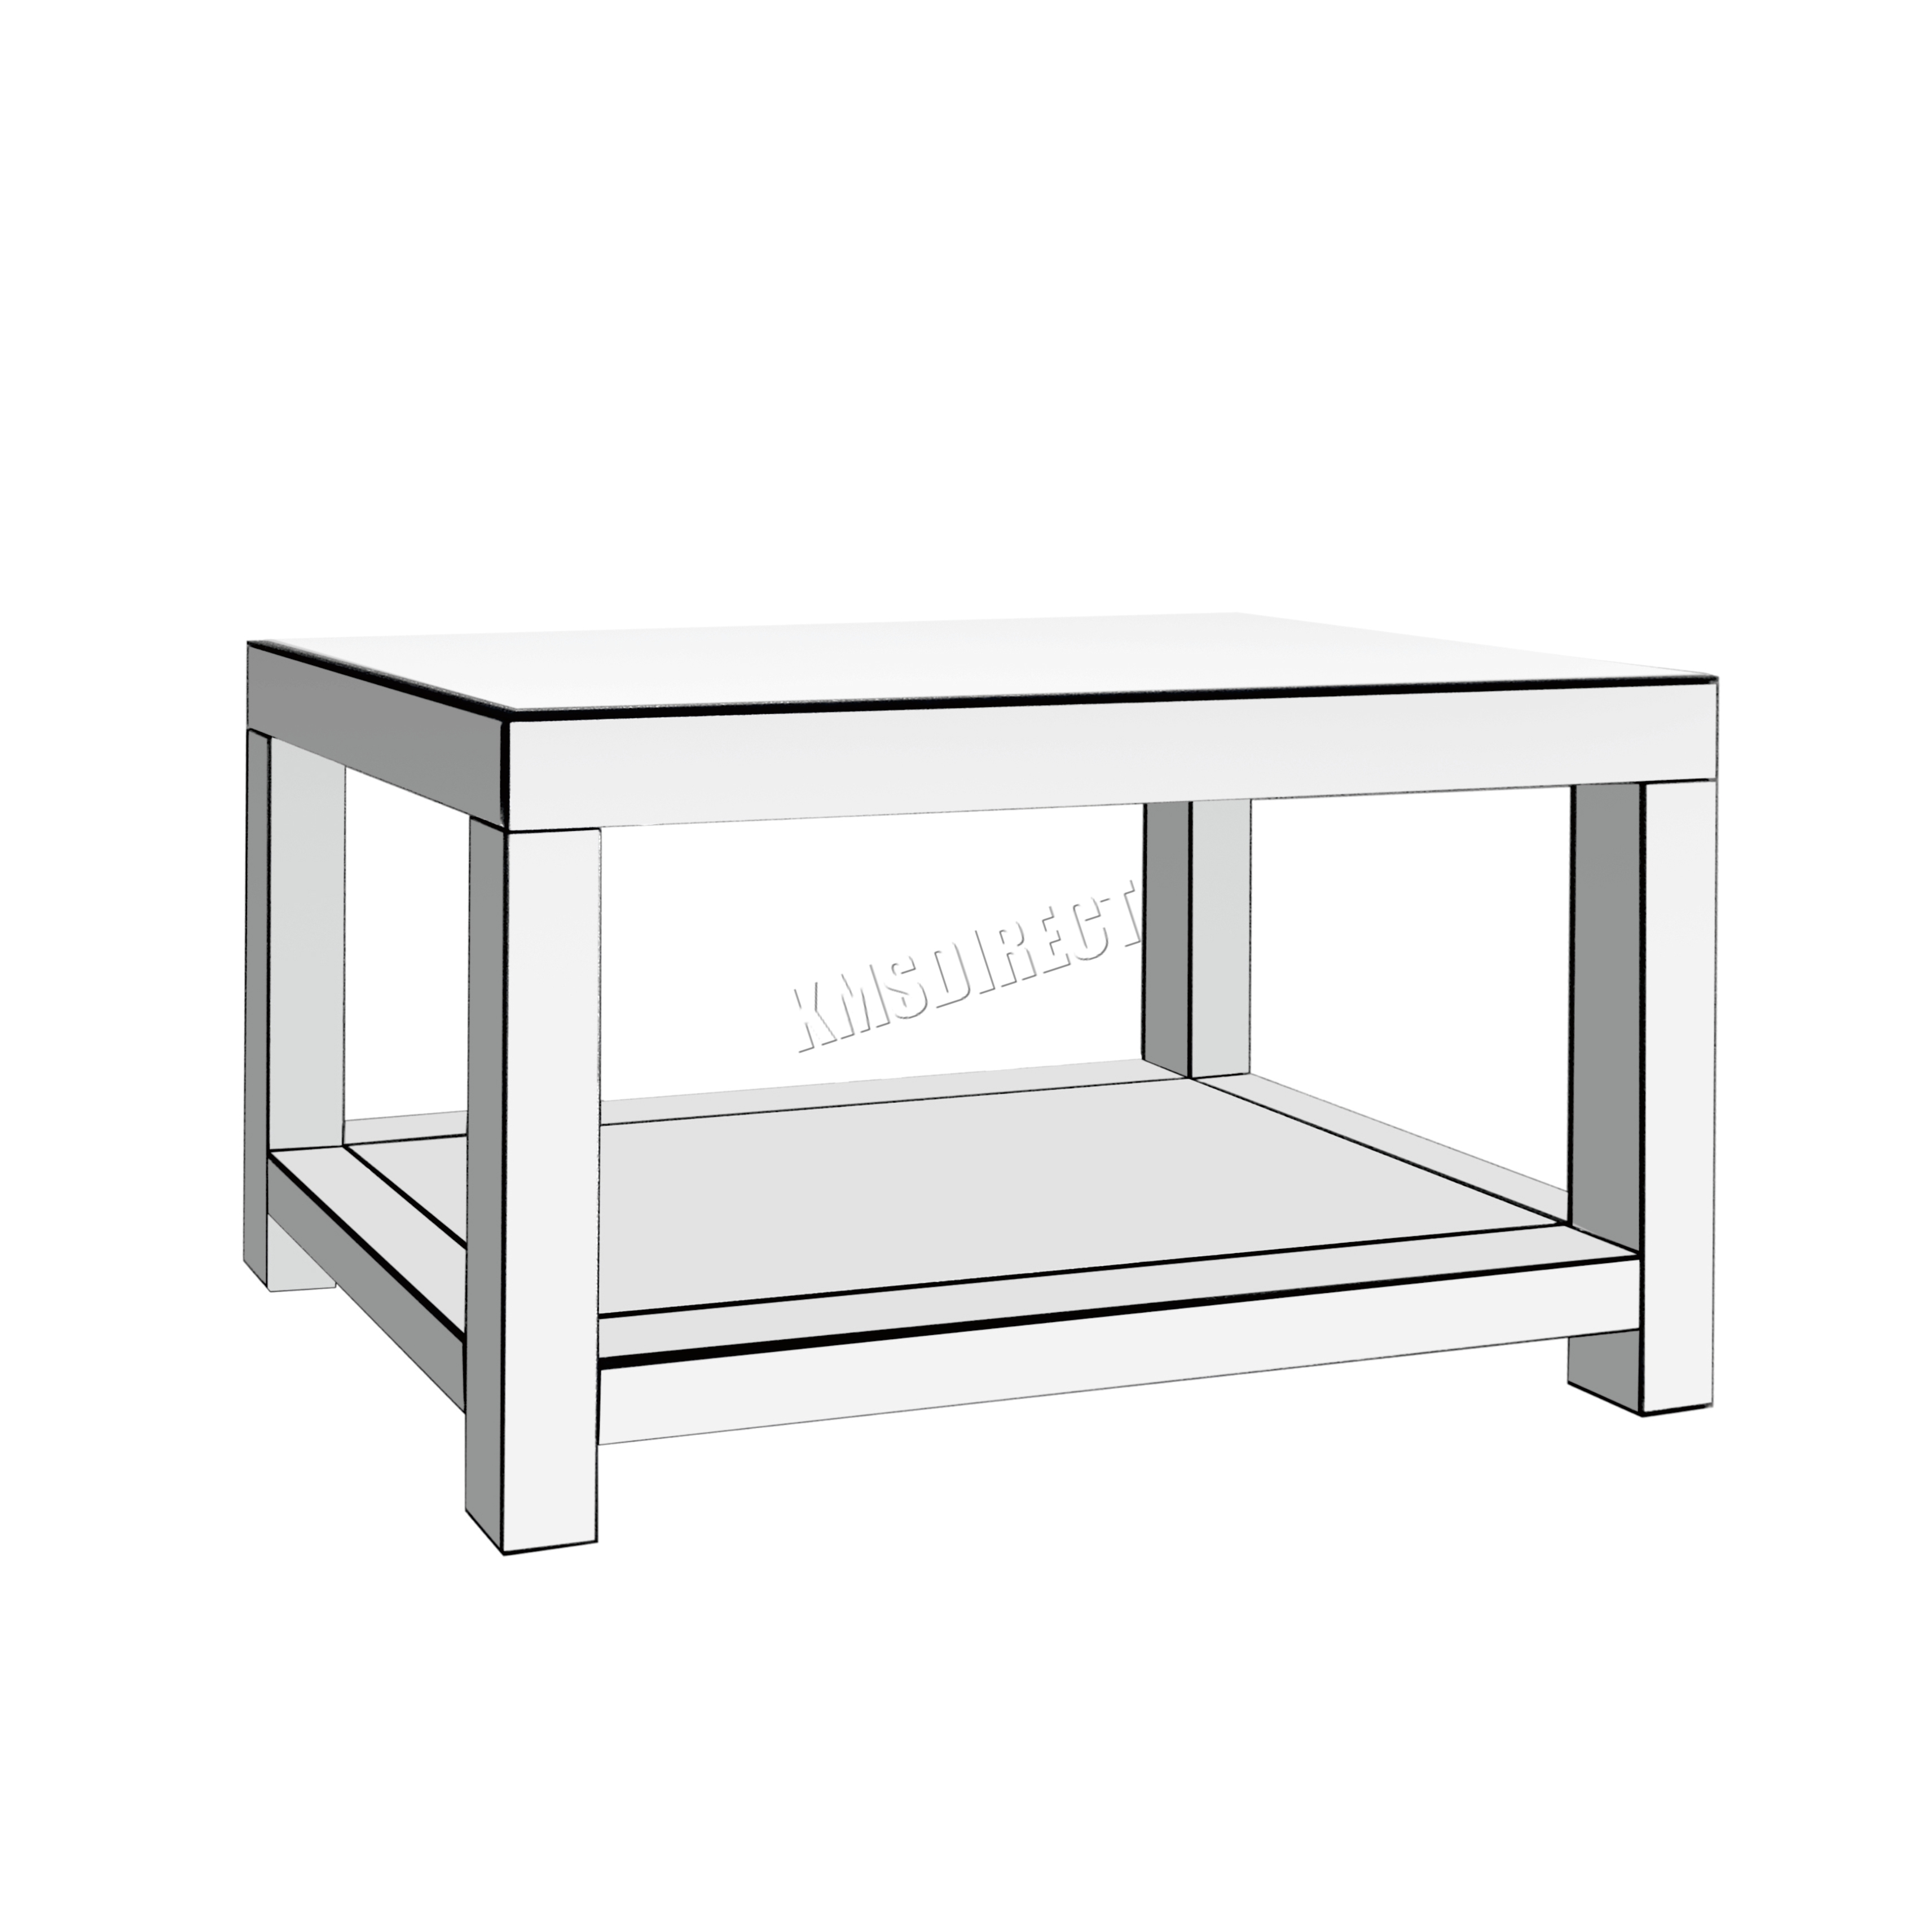 FoxHunter Mirrored Furniture Glass Coffee Table 2 Tier Desk Living